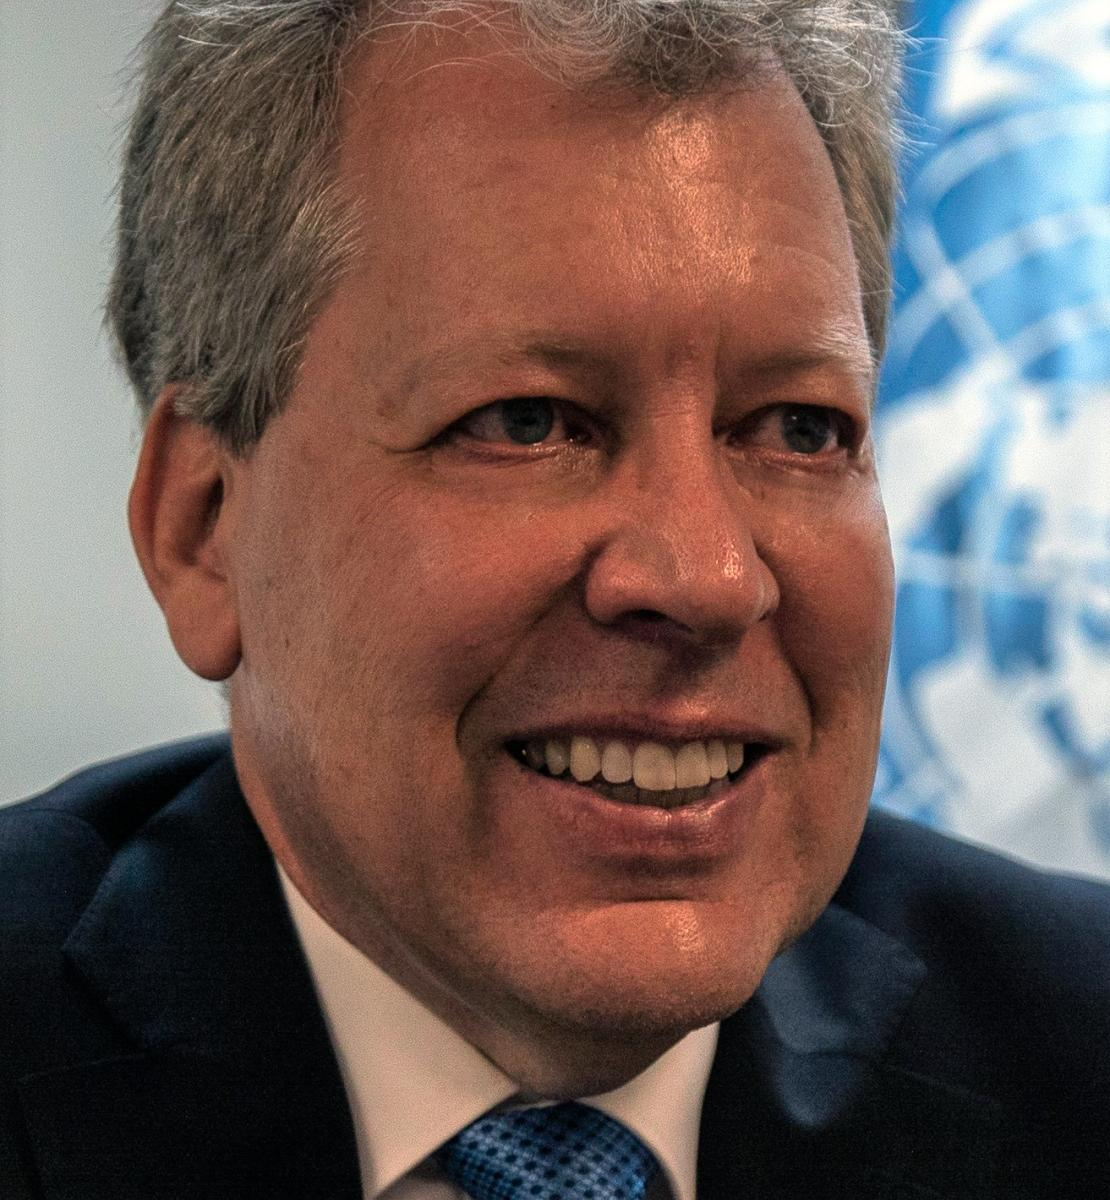 Official photo of the new appointed Resident Coordinator for Mexico, Peter Grohmann.